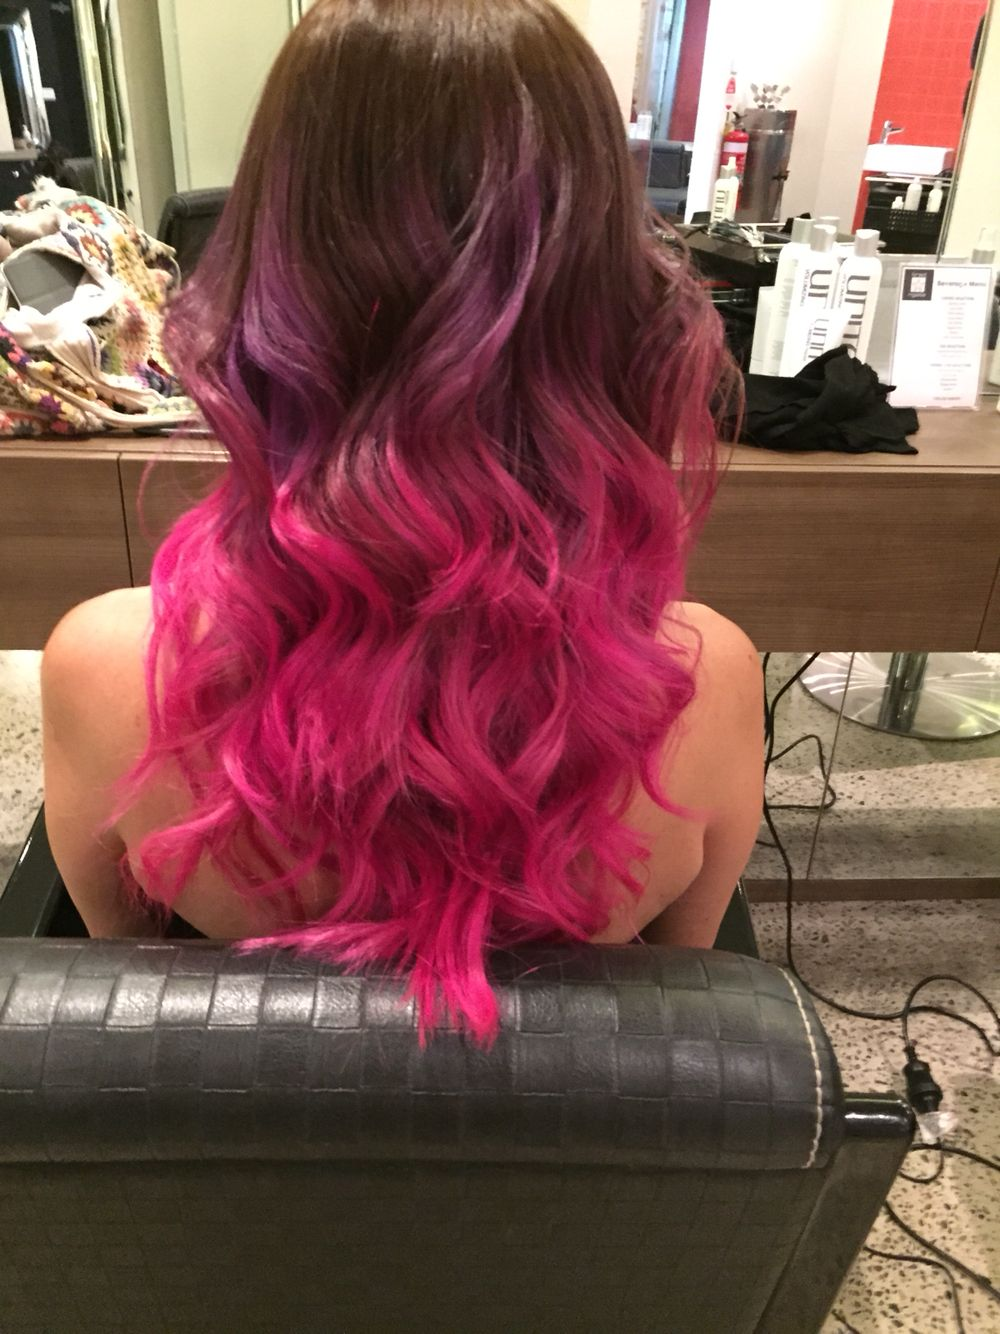 Purple-Pink ombré using Pravana Vivids and Neon Vivids. Styling with Unite Haircare for the best Haircare for high demand colours and the Ego Professional Alter Ego and Inflated Ego. #pravana #vivids #egoprofessional #unitehaircare #ombré #gamora #sydneycolourist #hairdreams #colourchange #hairartistry #hairdesign #joshuacavanagh #bradngatahairdirection #sydney #surryhills #neonhair #creation #highfashion #wedocoolhair #loveyourhair